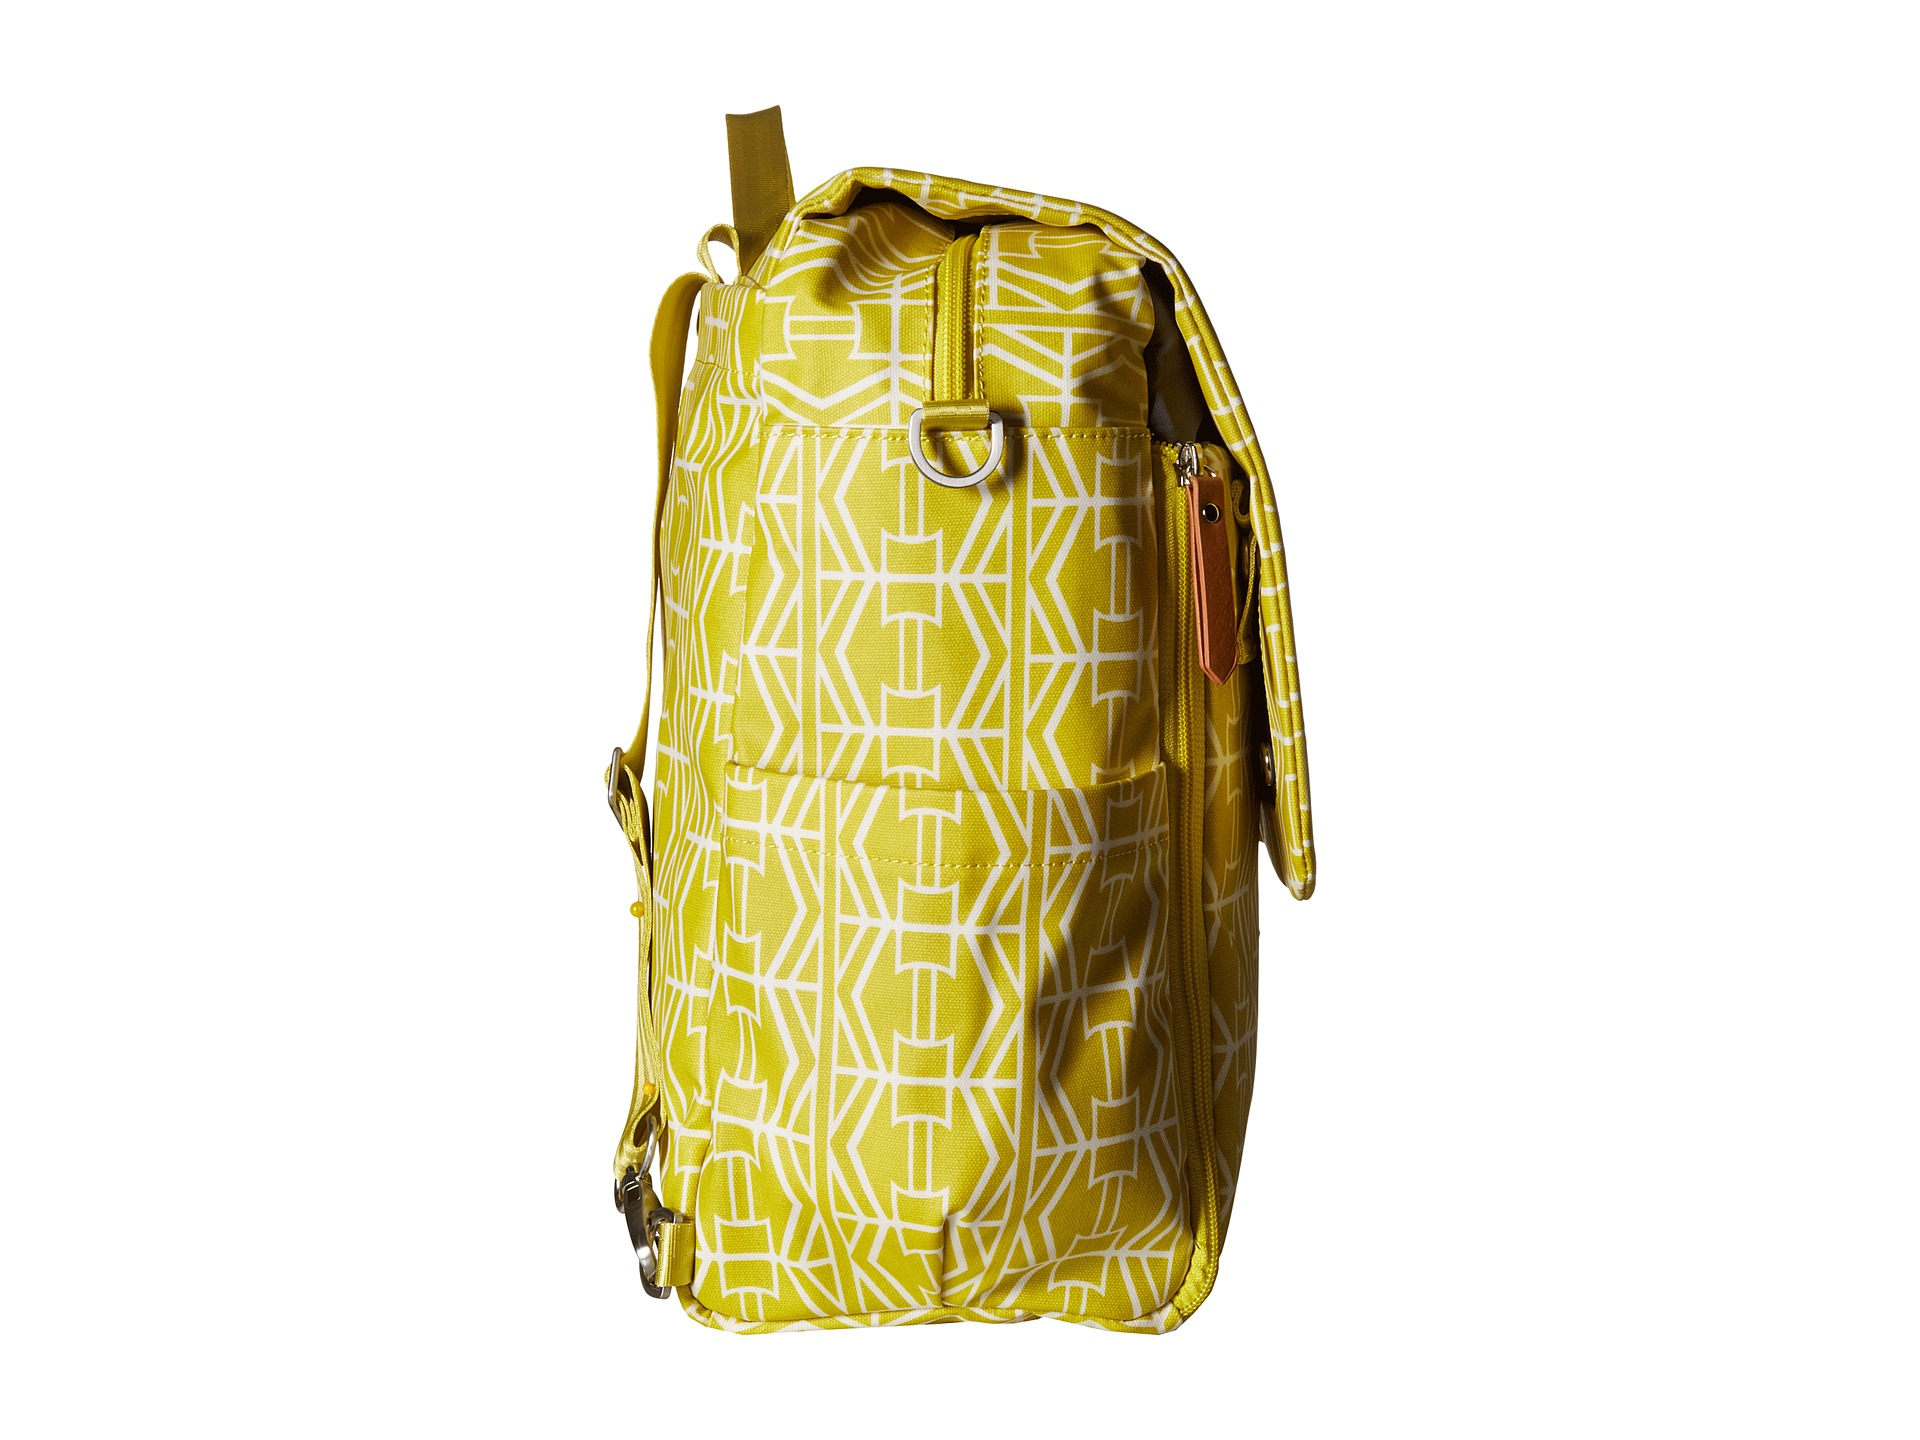 petunia pickle bottom glazed boxy backpack electric citrus free shipping both ways. Black Bedroom Furniture Sets. Home Design Ideas